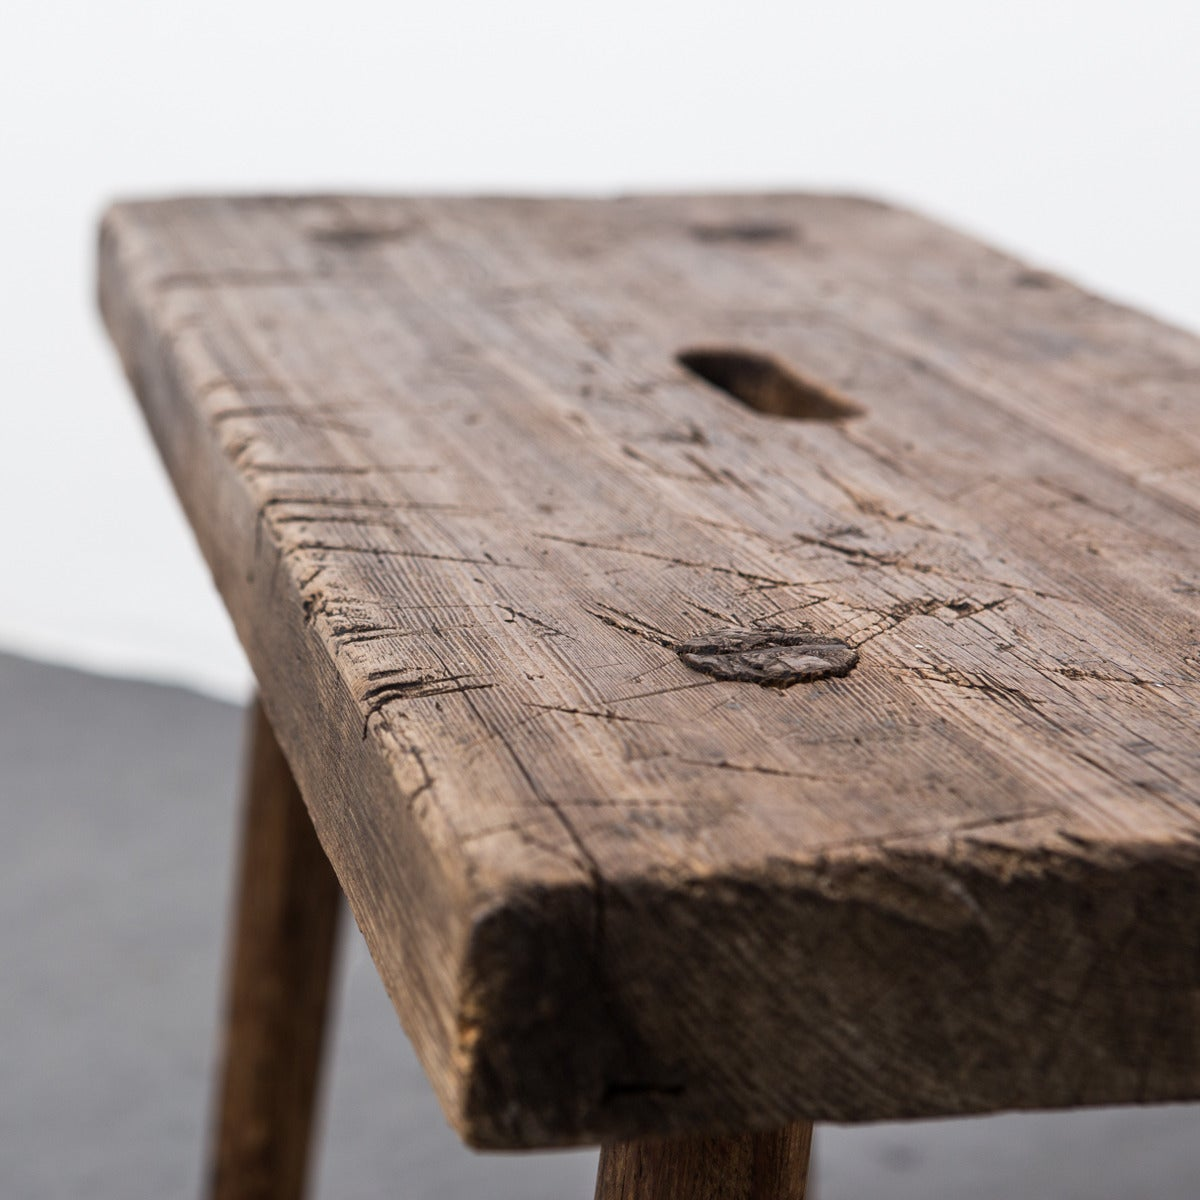 Bench made in Sweden during the 19th century.